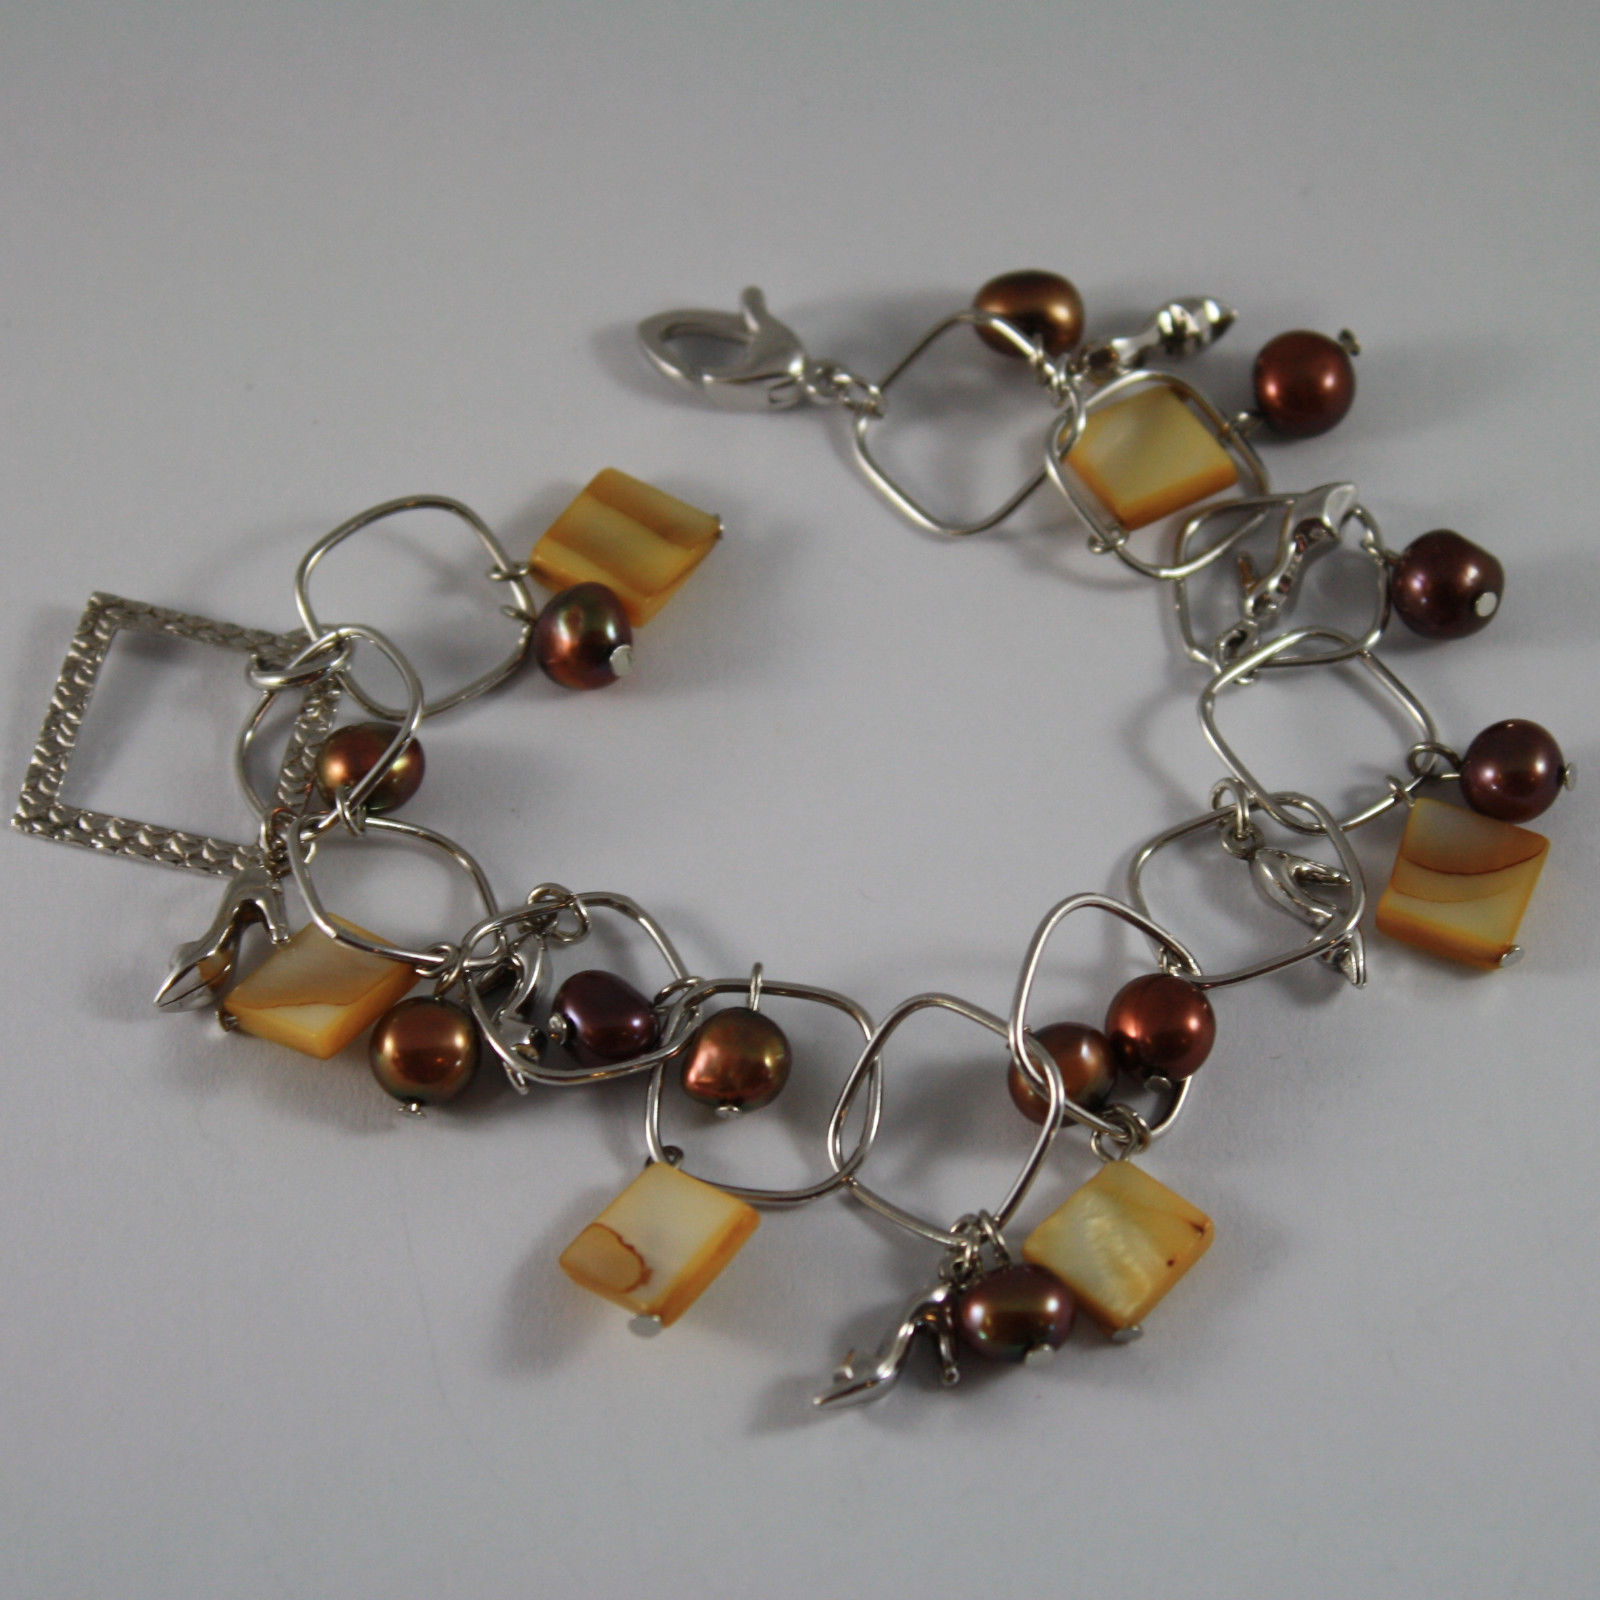 .925 RHODIUM SILVER BRACELET WITH BROWN PEARLS, MOTHER OF PEARL AND SHOES CHARMS